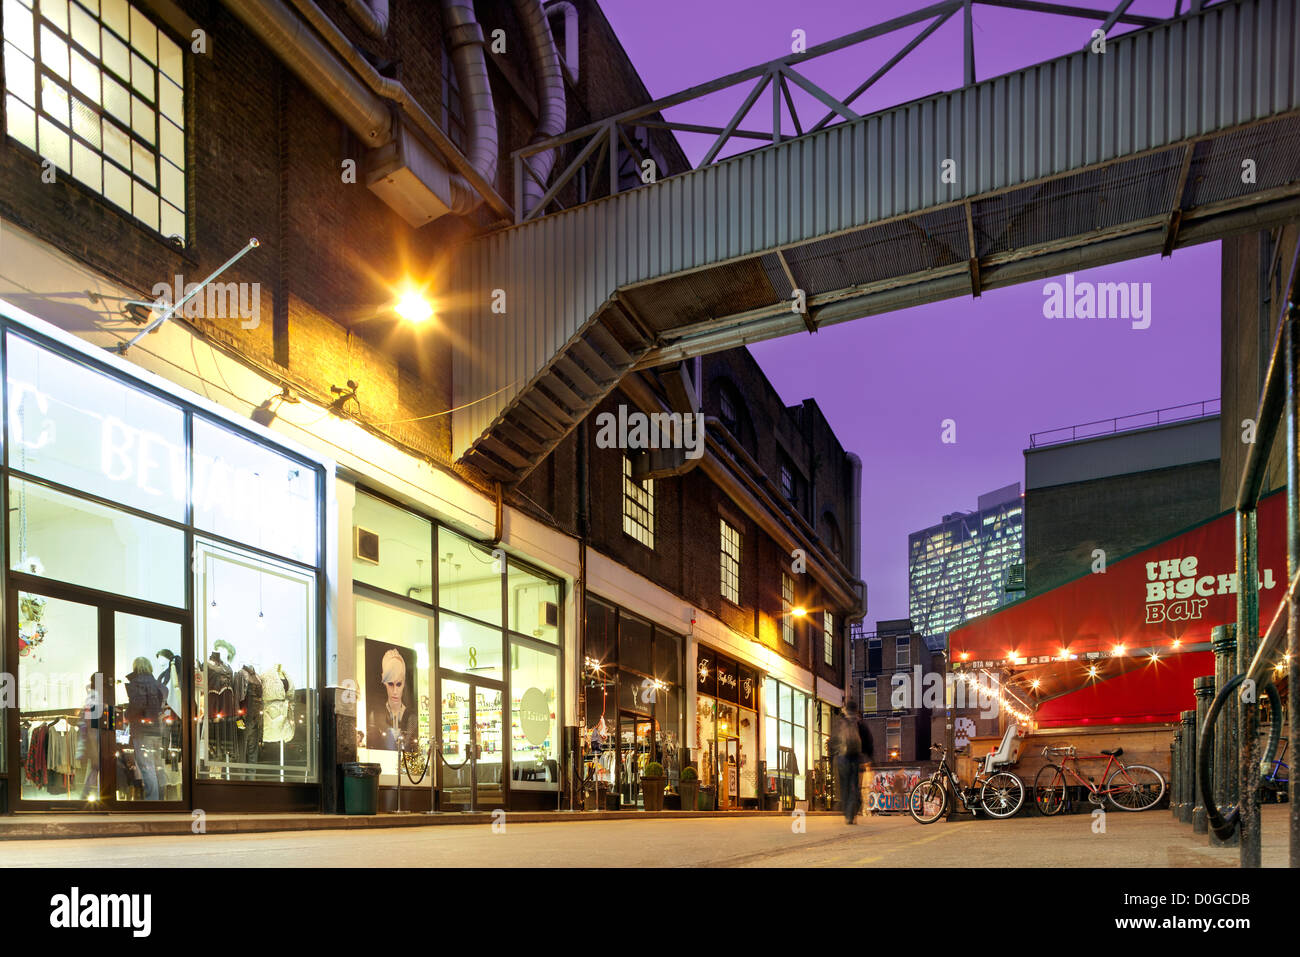 The Old Truman Brewery shopping and art complex. Boutiques, shops on Dray Walk off Brick Lane Shoreditch Spitalfields - Stock Image